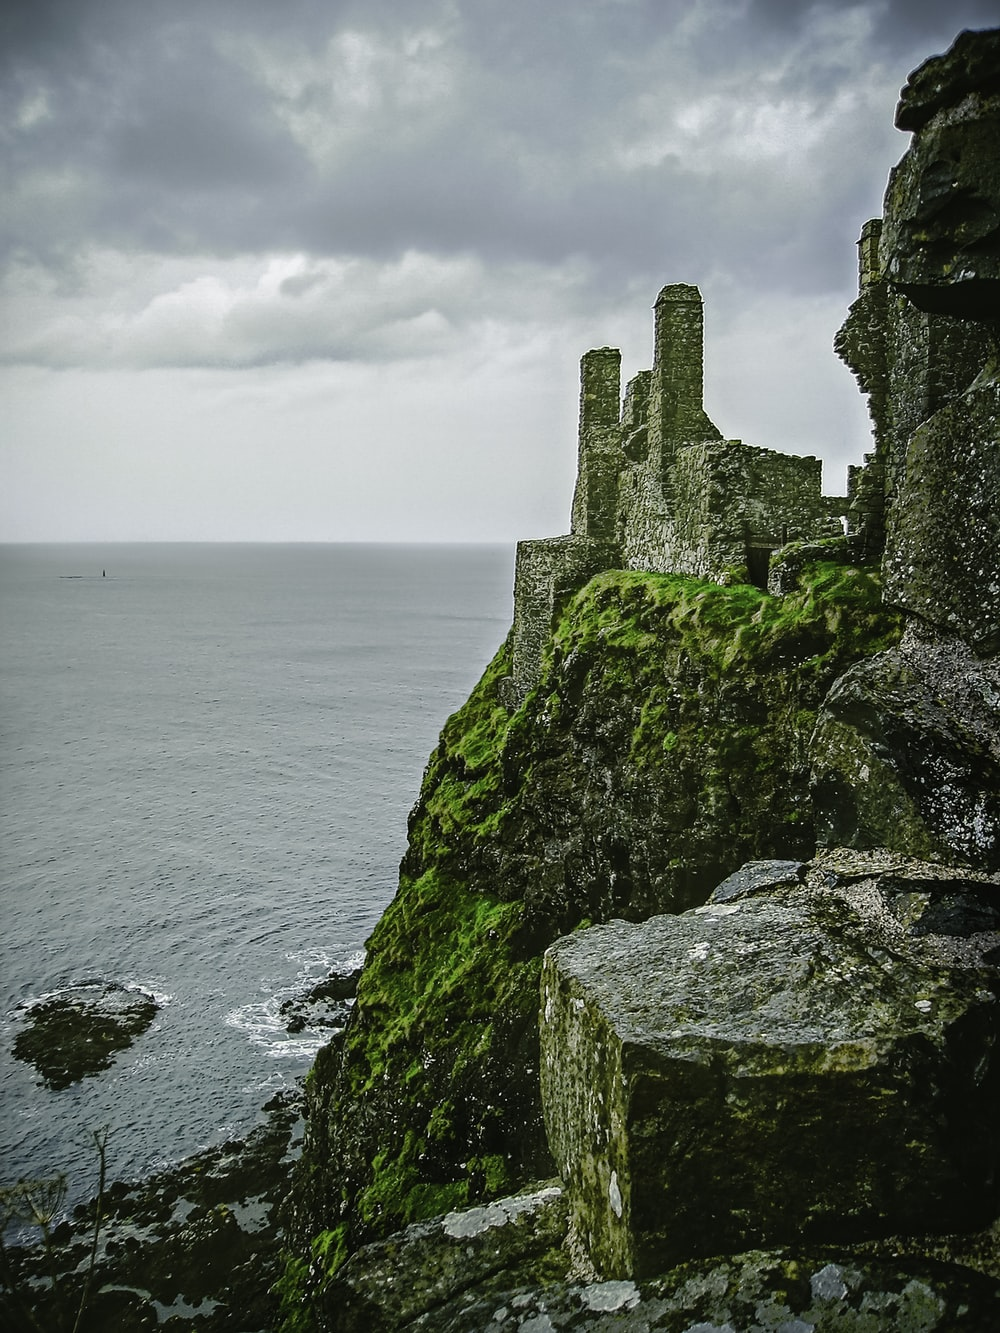 Stone Castle On Hill Photo Free Dunluce Castle A K A Pyke Castle Seat Of The House Of Greyjoy In Game Of Thrones Image On Unsplash